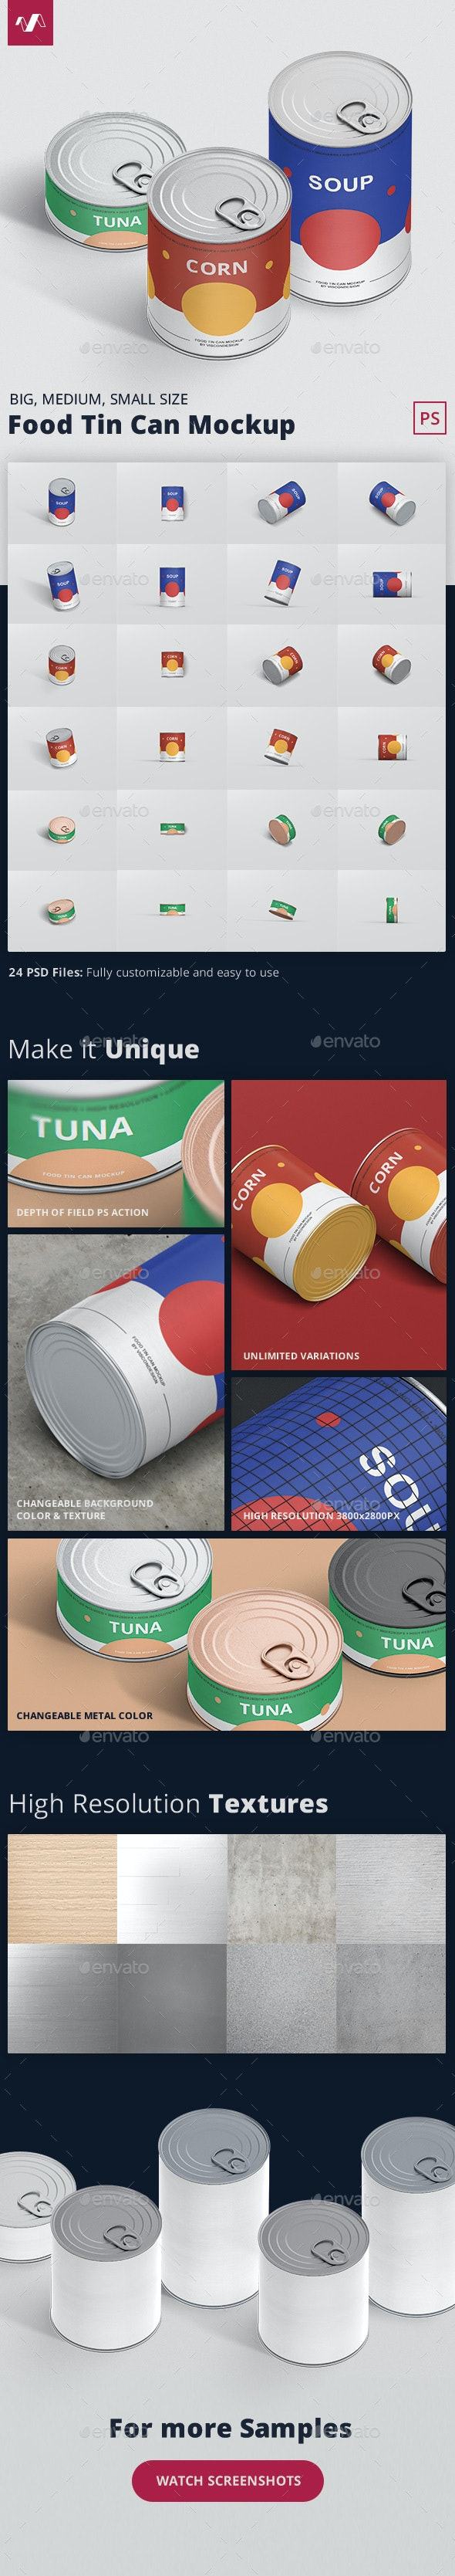 Food Tin Can Mockup Bundle - Food and Drink Packaging